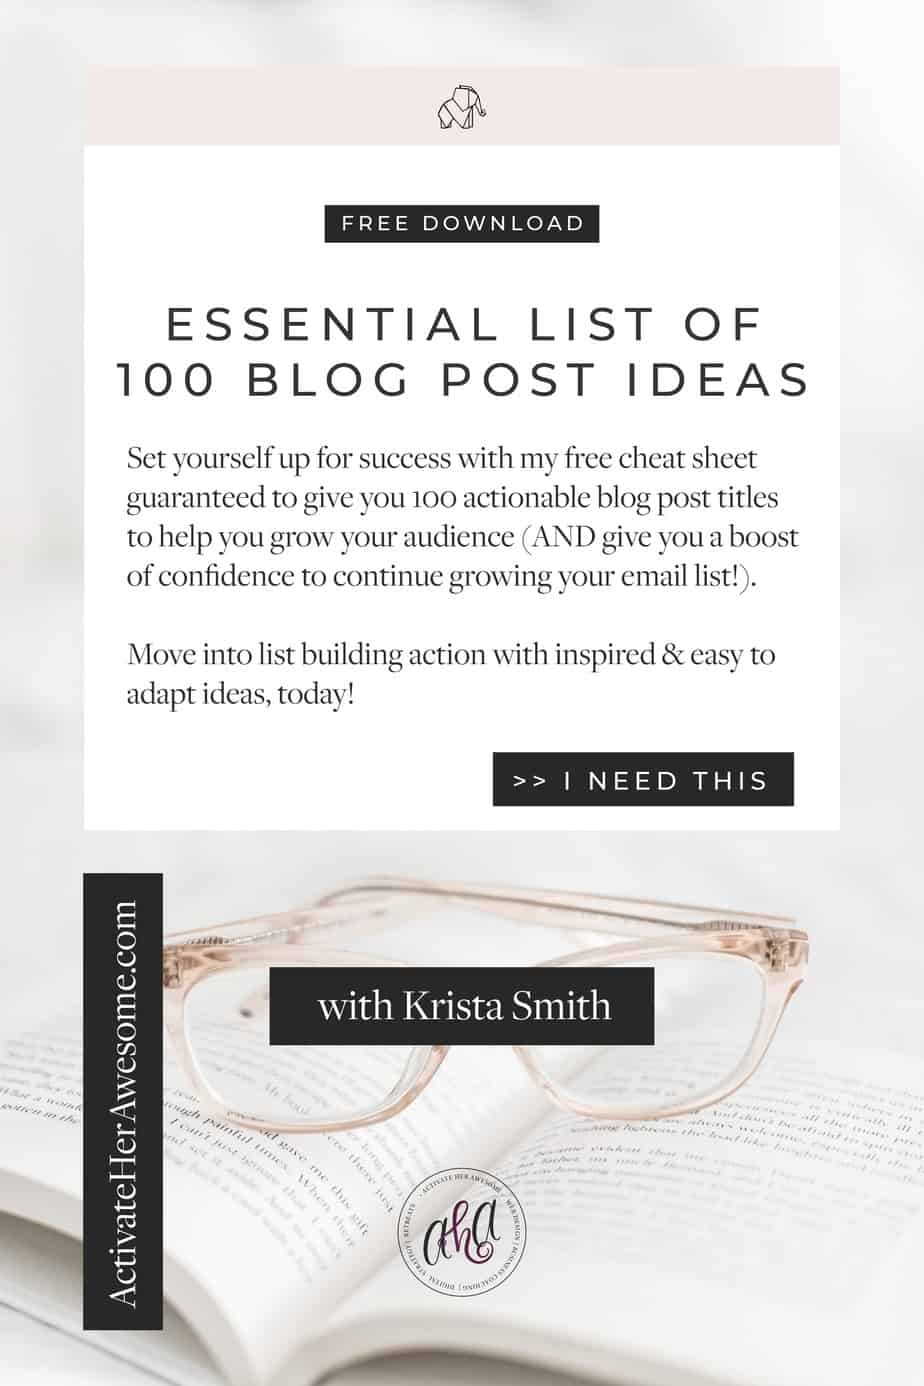 Set yourself up for success with my free cheat sheet  guaranteed to give you 100 actionable blog post titles  to help you grow your audience (AND give you a boost  of confidence to continue growing your email list!).   Move into list building action with inspired & easy to adapt ideas, today from Krista Smith at ActivateHerAwesome.com